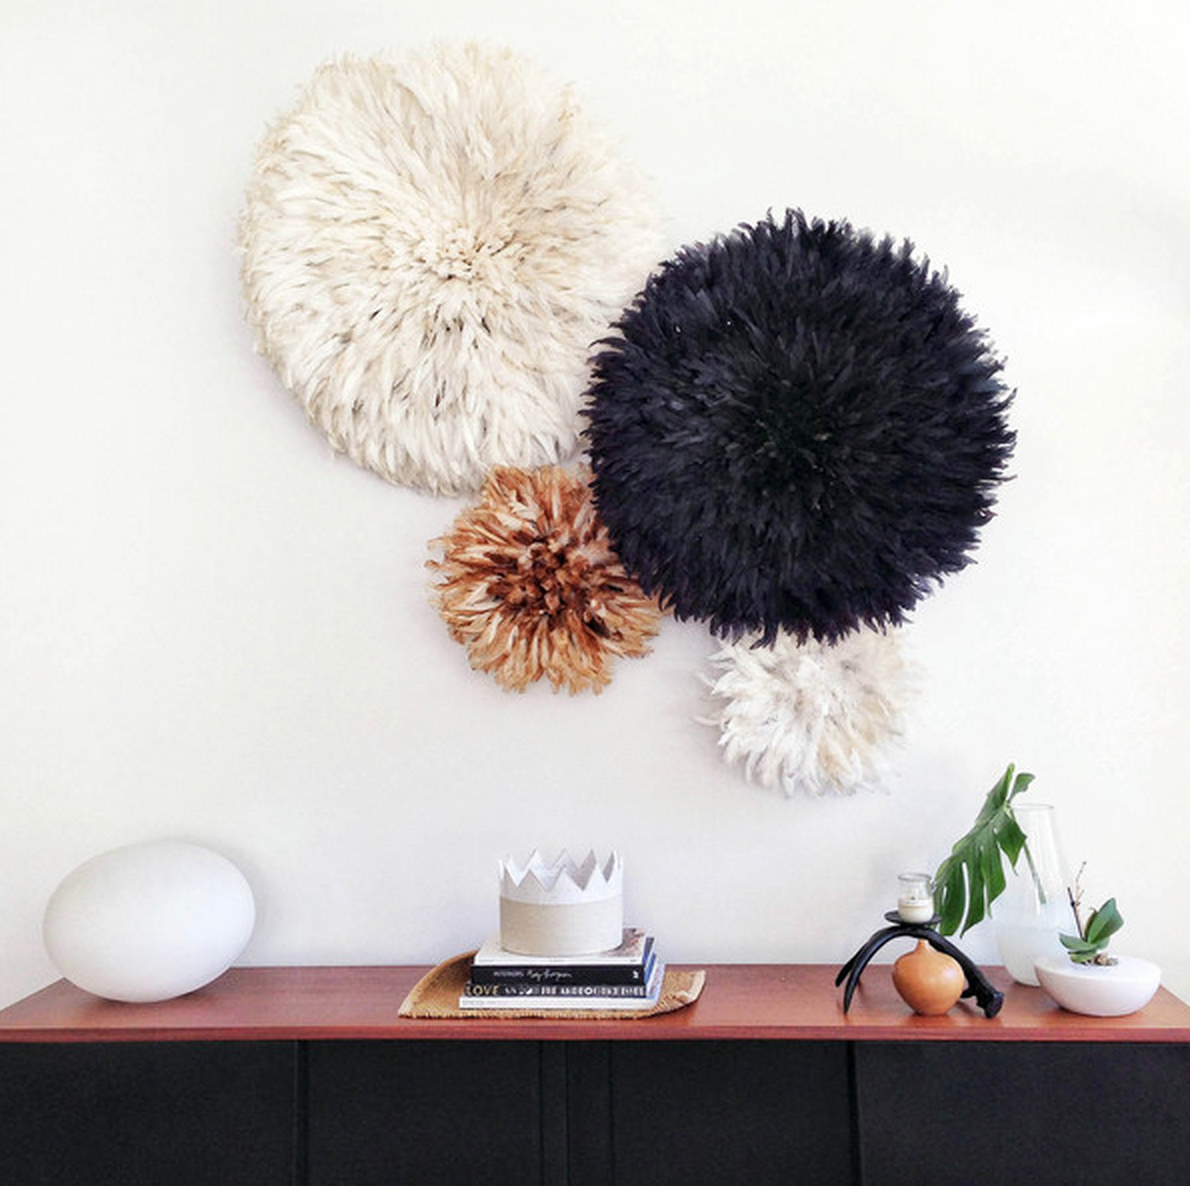 20 Ways To Decorate With African Juju Hats Glitter Inc African Inspired Decor Decor African Decor